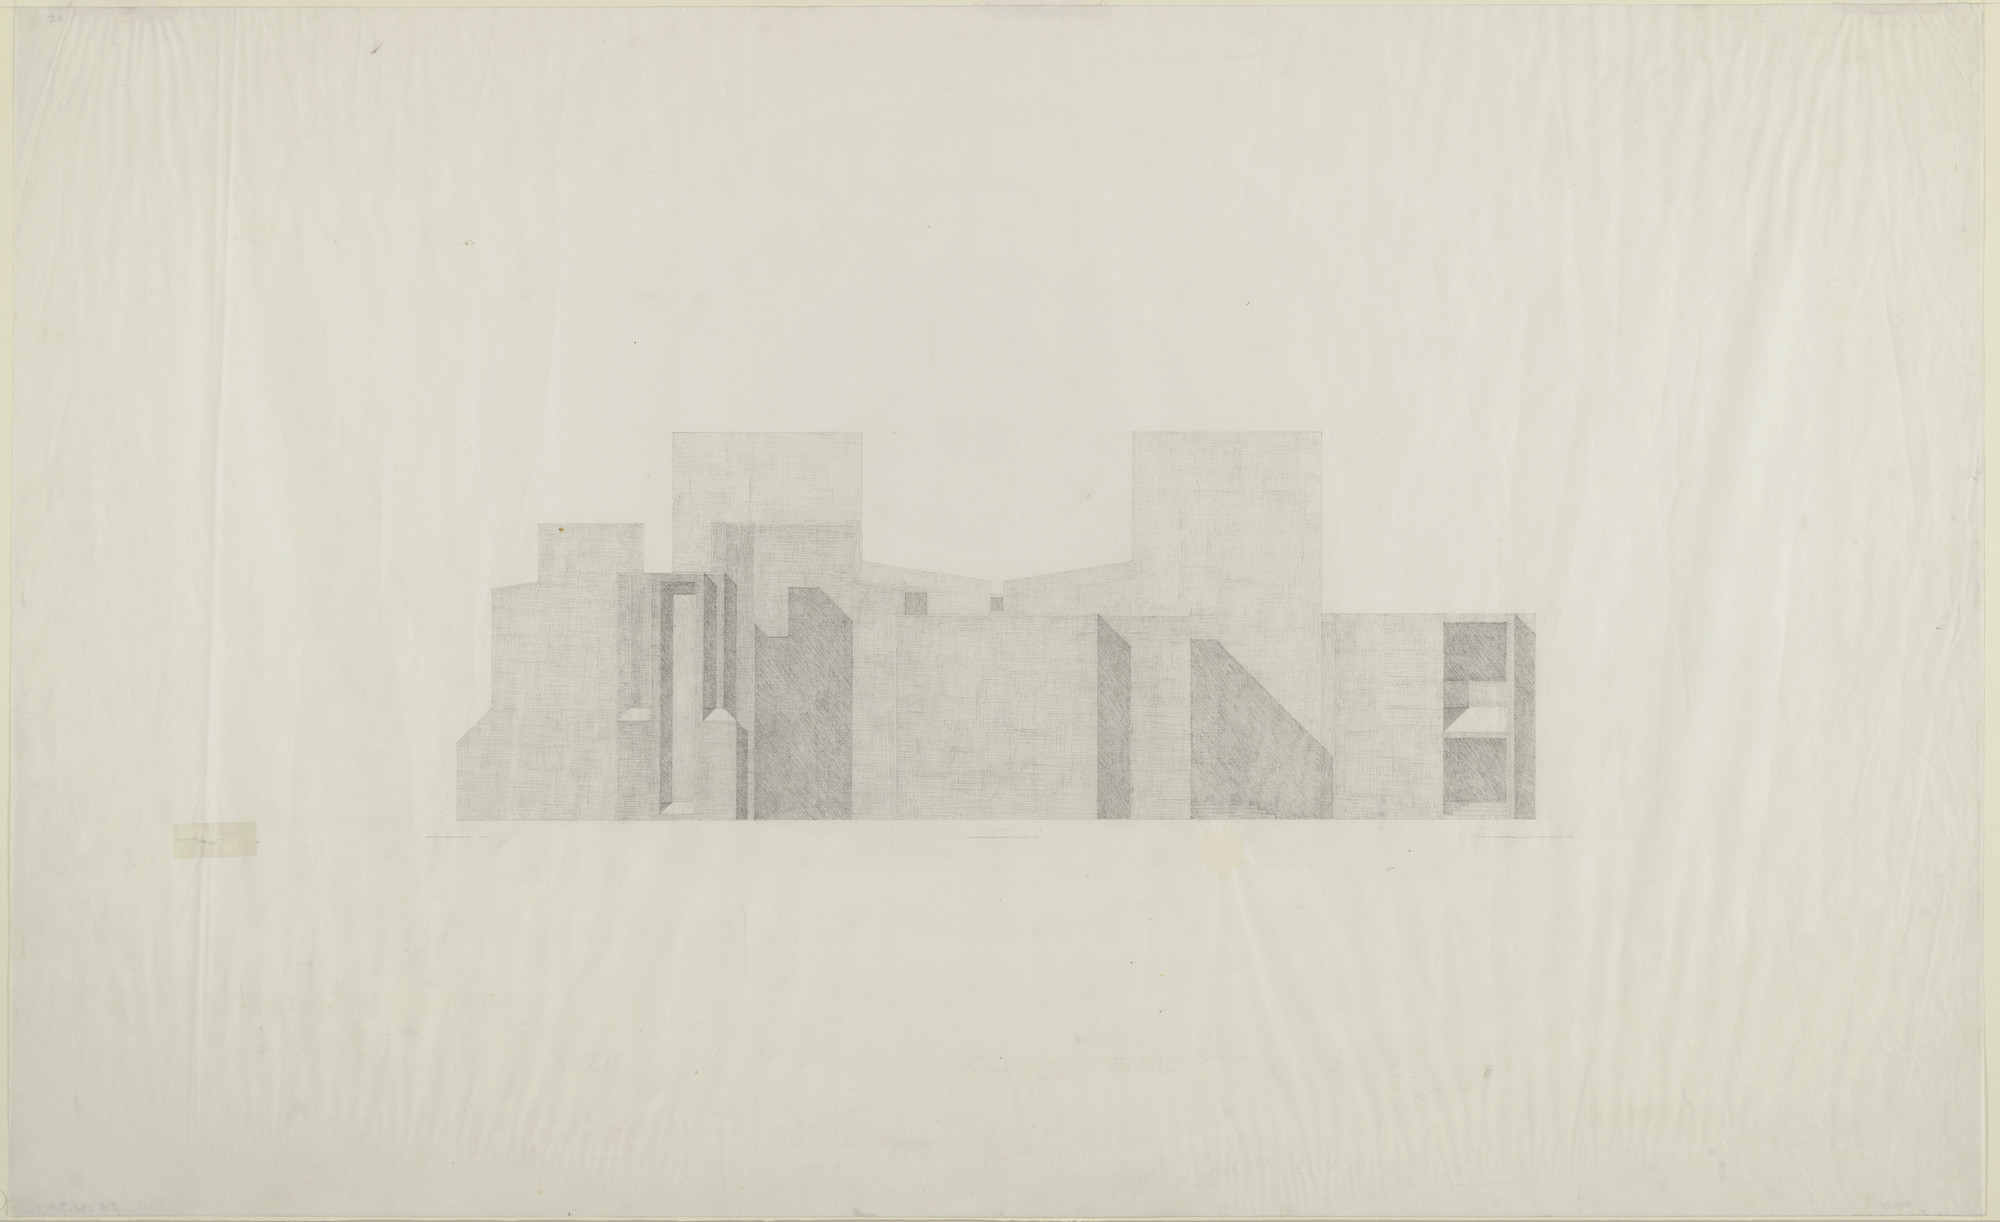 Louis I. Kahn. First Unitarian Church and School, Rochester, New York, Final version: elevation. 1961